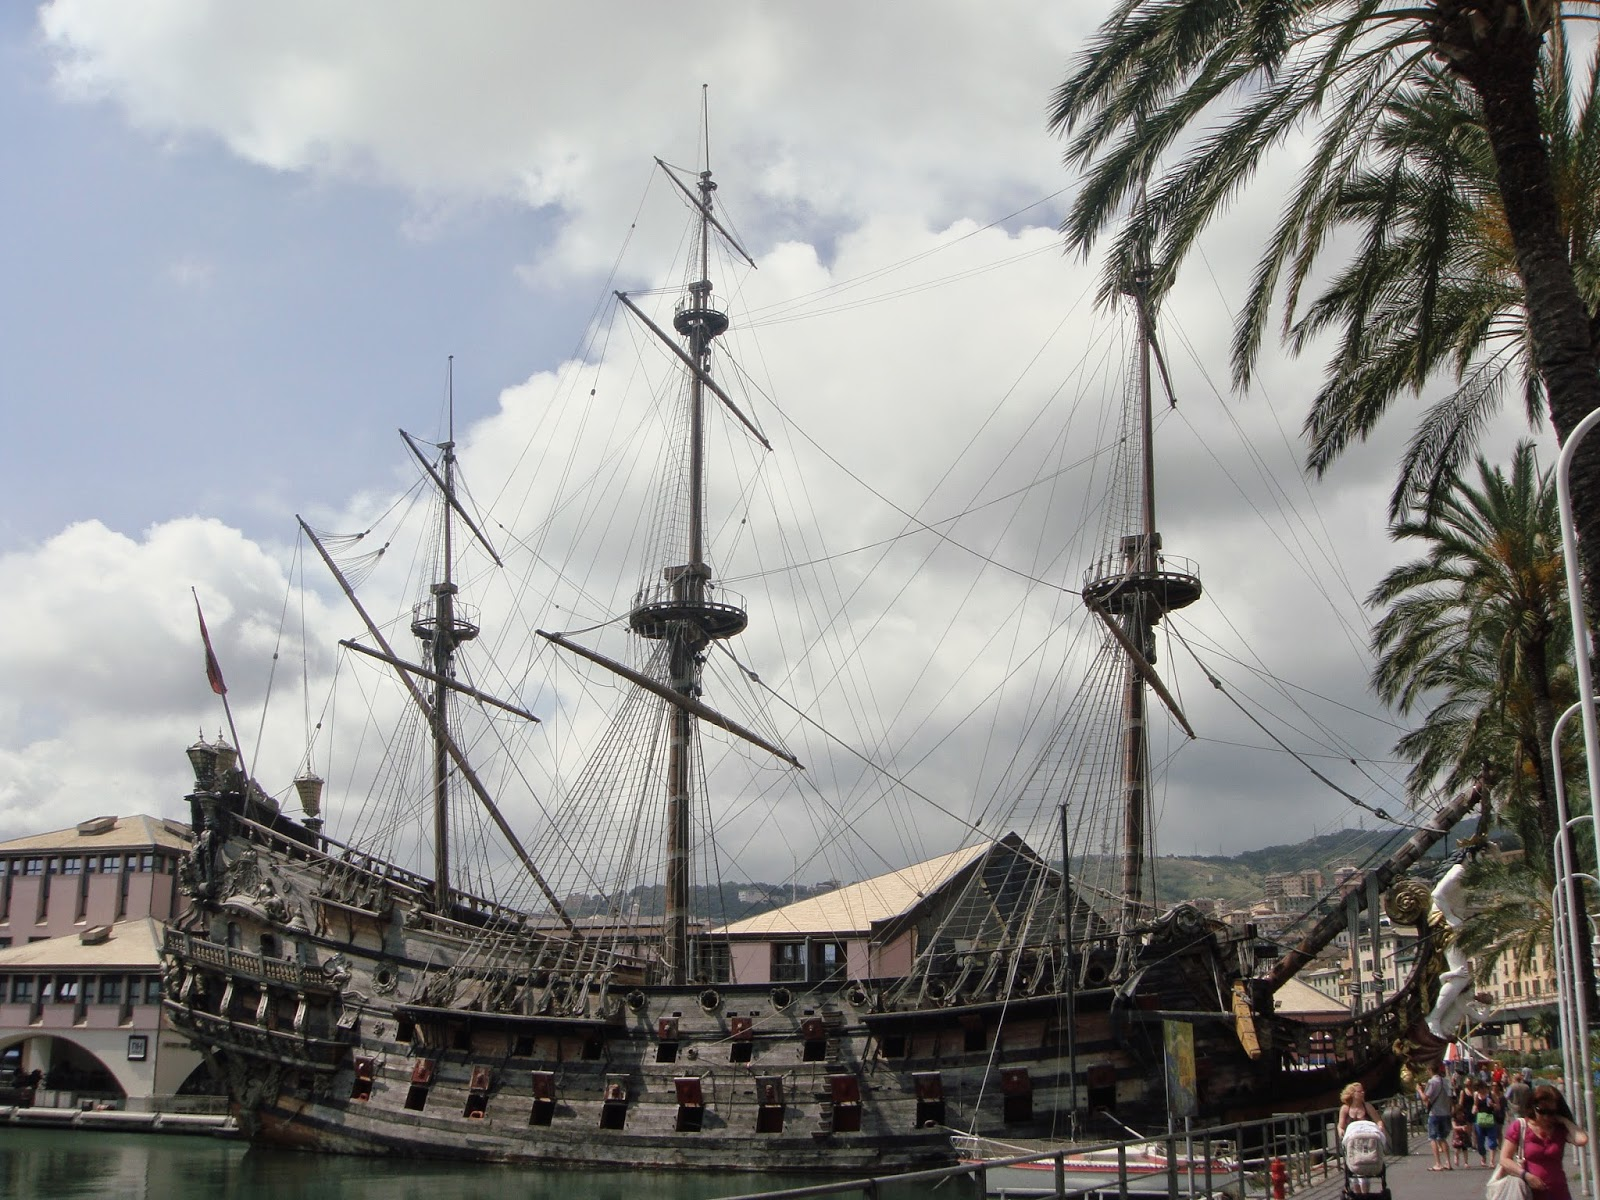 Pirate ship Genova